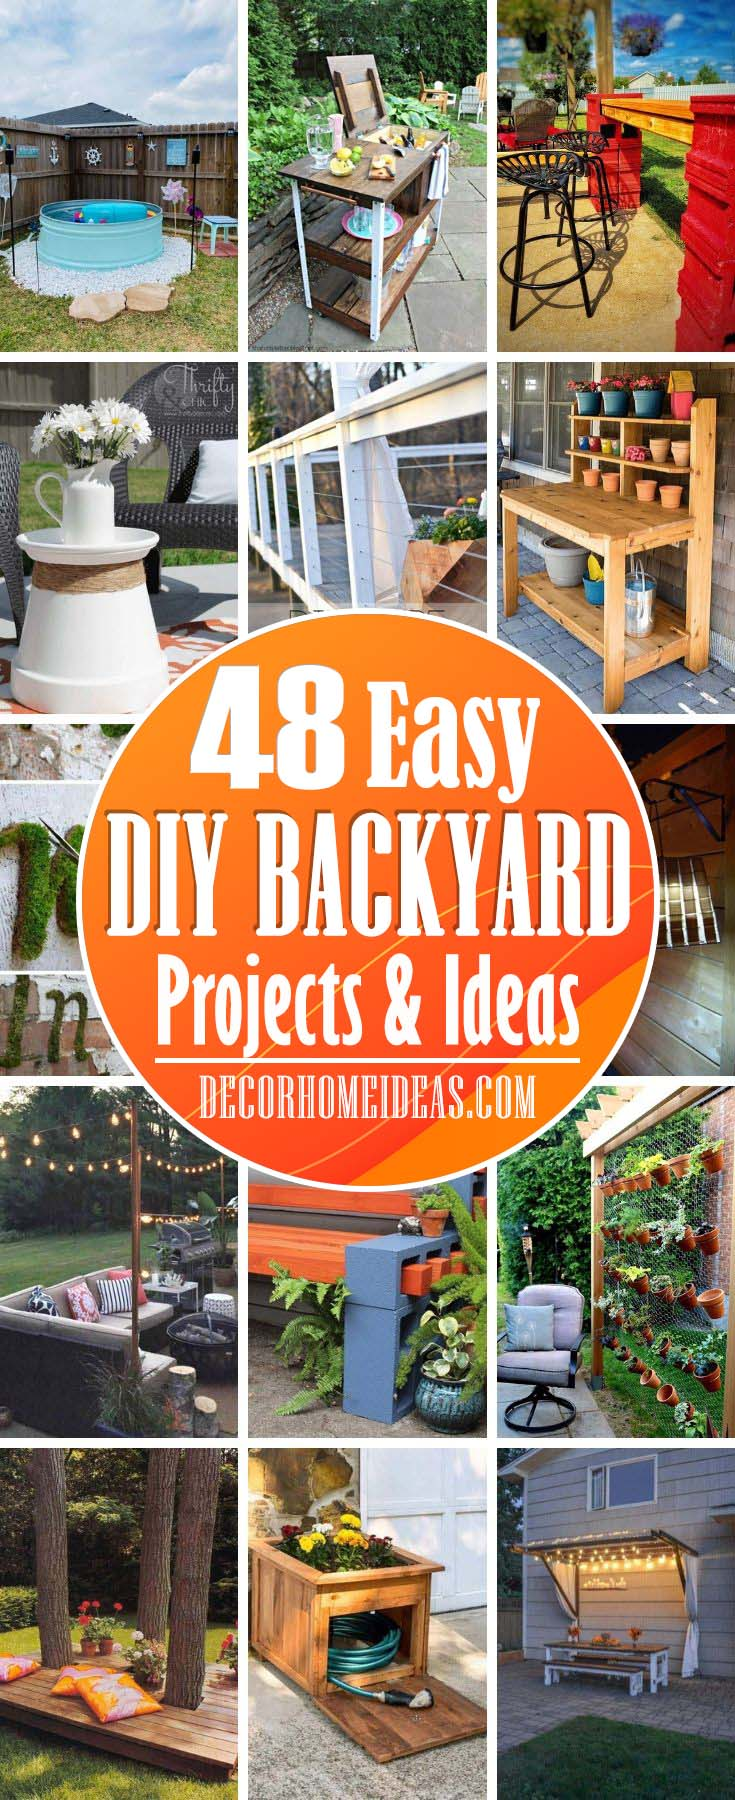 Best DIY Backyard Projects And Ideas. Creative DIY projects and ideas for your garden or backyard. Build your own pool, bar or pergola with these ideas. #diy #backyard #garden #projects #decorhomeideas